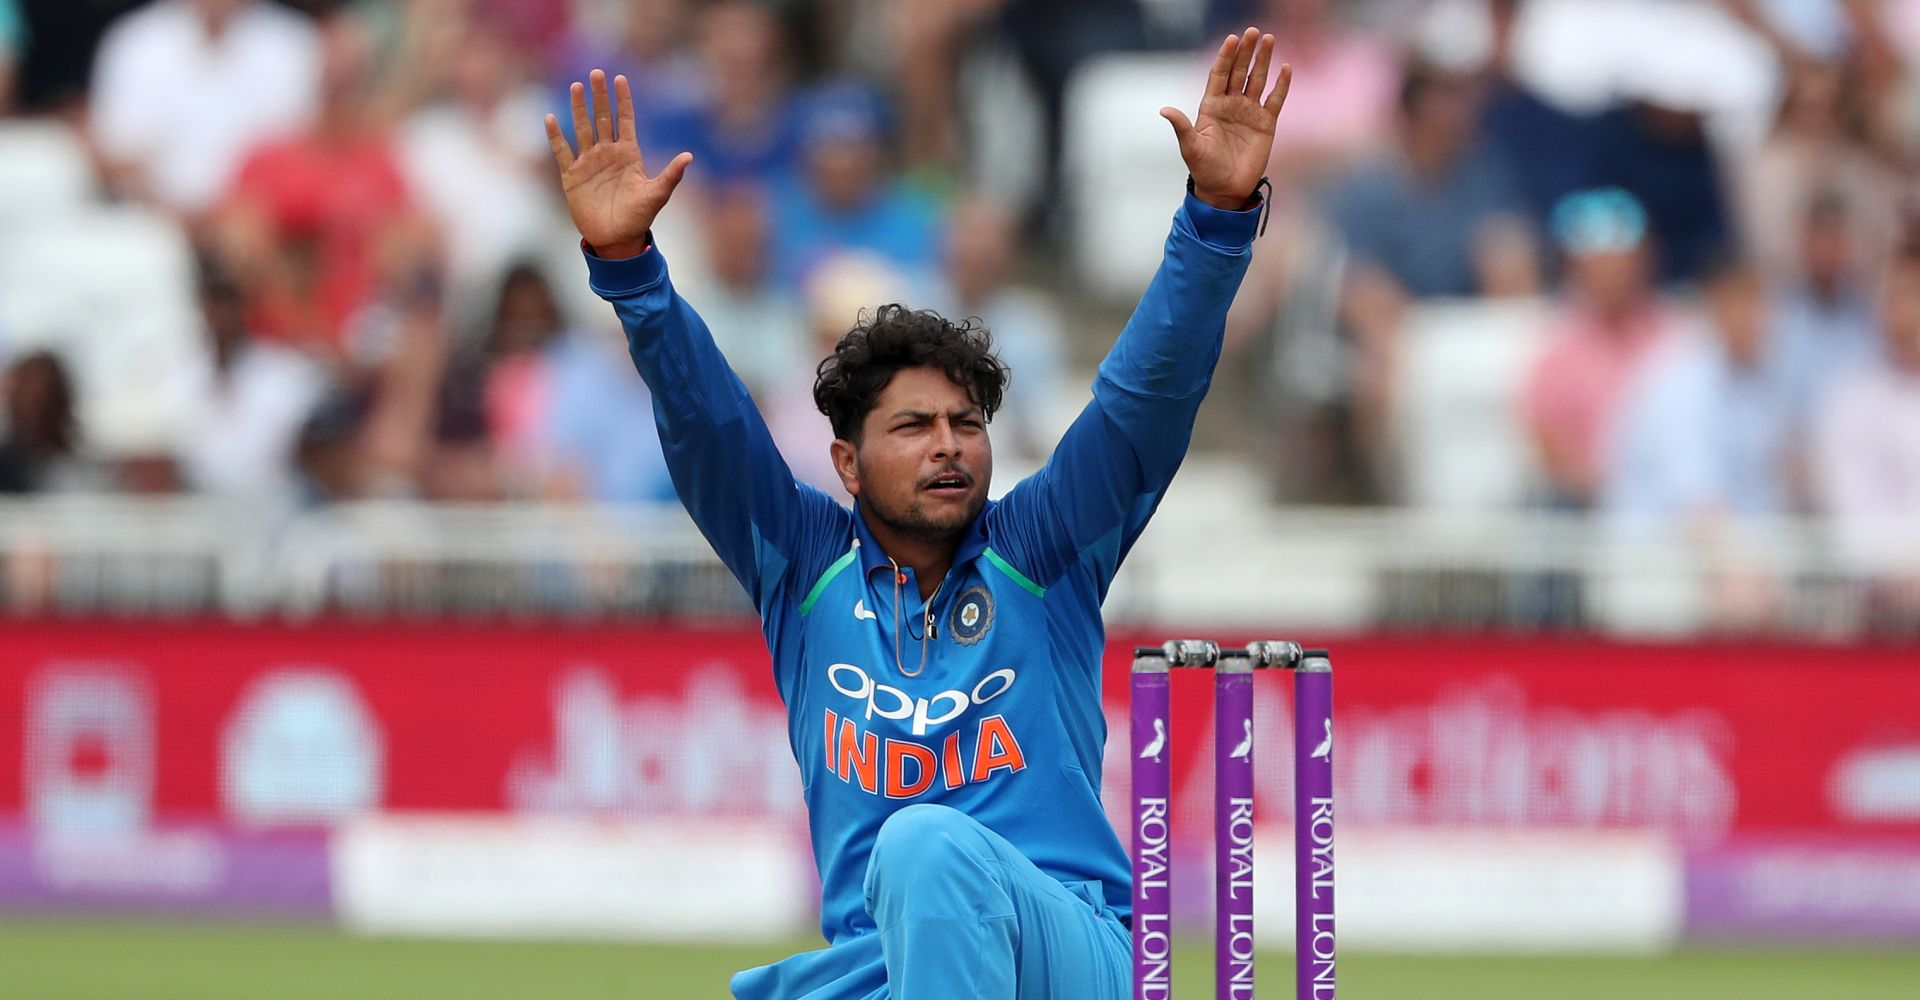 England v India third ODI odds: Kuldeep Yadav top away wicket taker odds